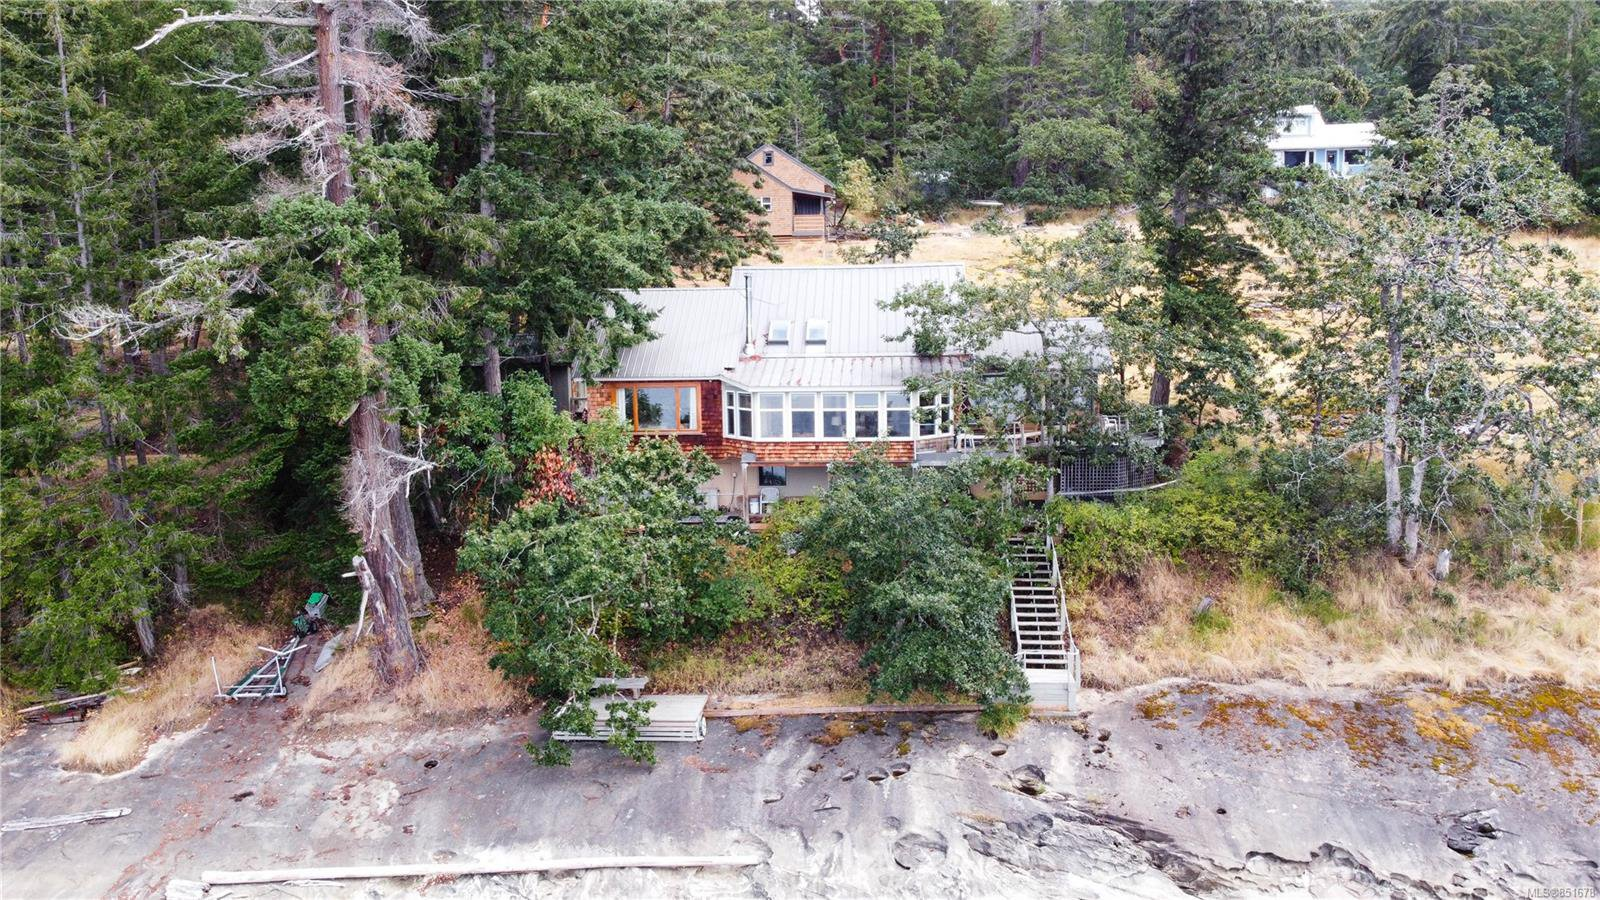 Photo 4: Photos: 262 Forbes Dr in : Isl Thetis Island House for sale (Islands)  : MLS®# 851678